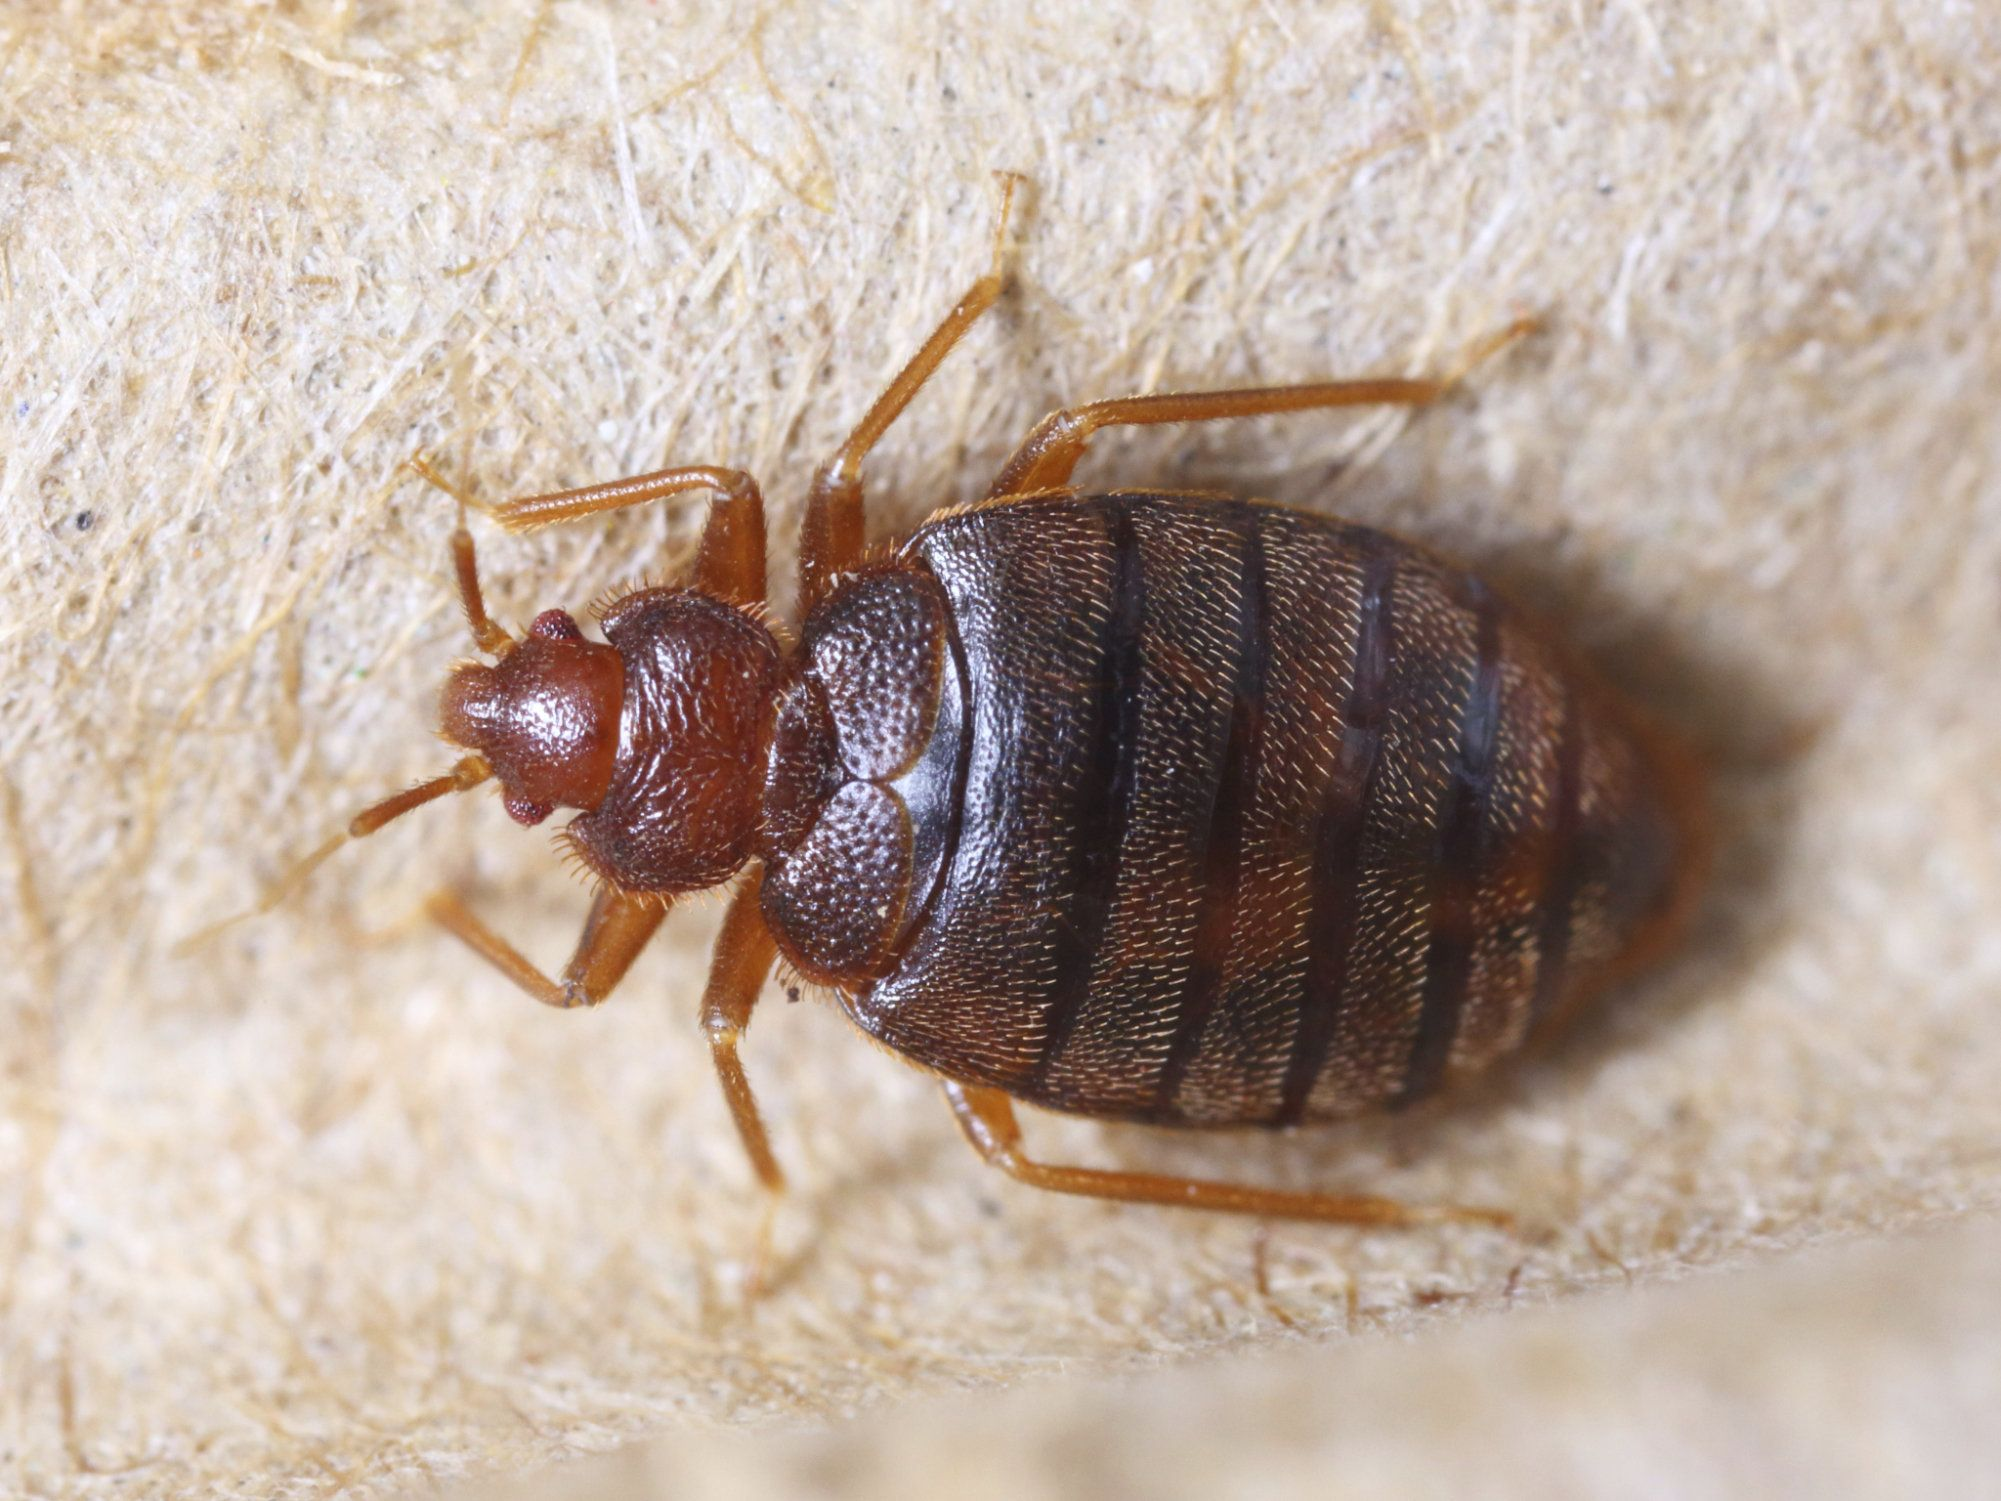 Detroit has been named the most bedbug-infested city in the U.S.